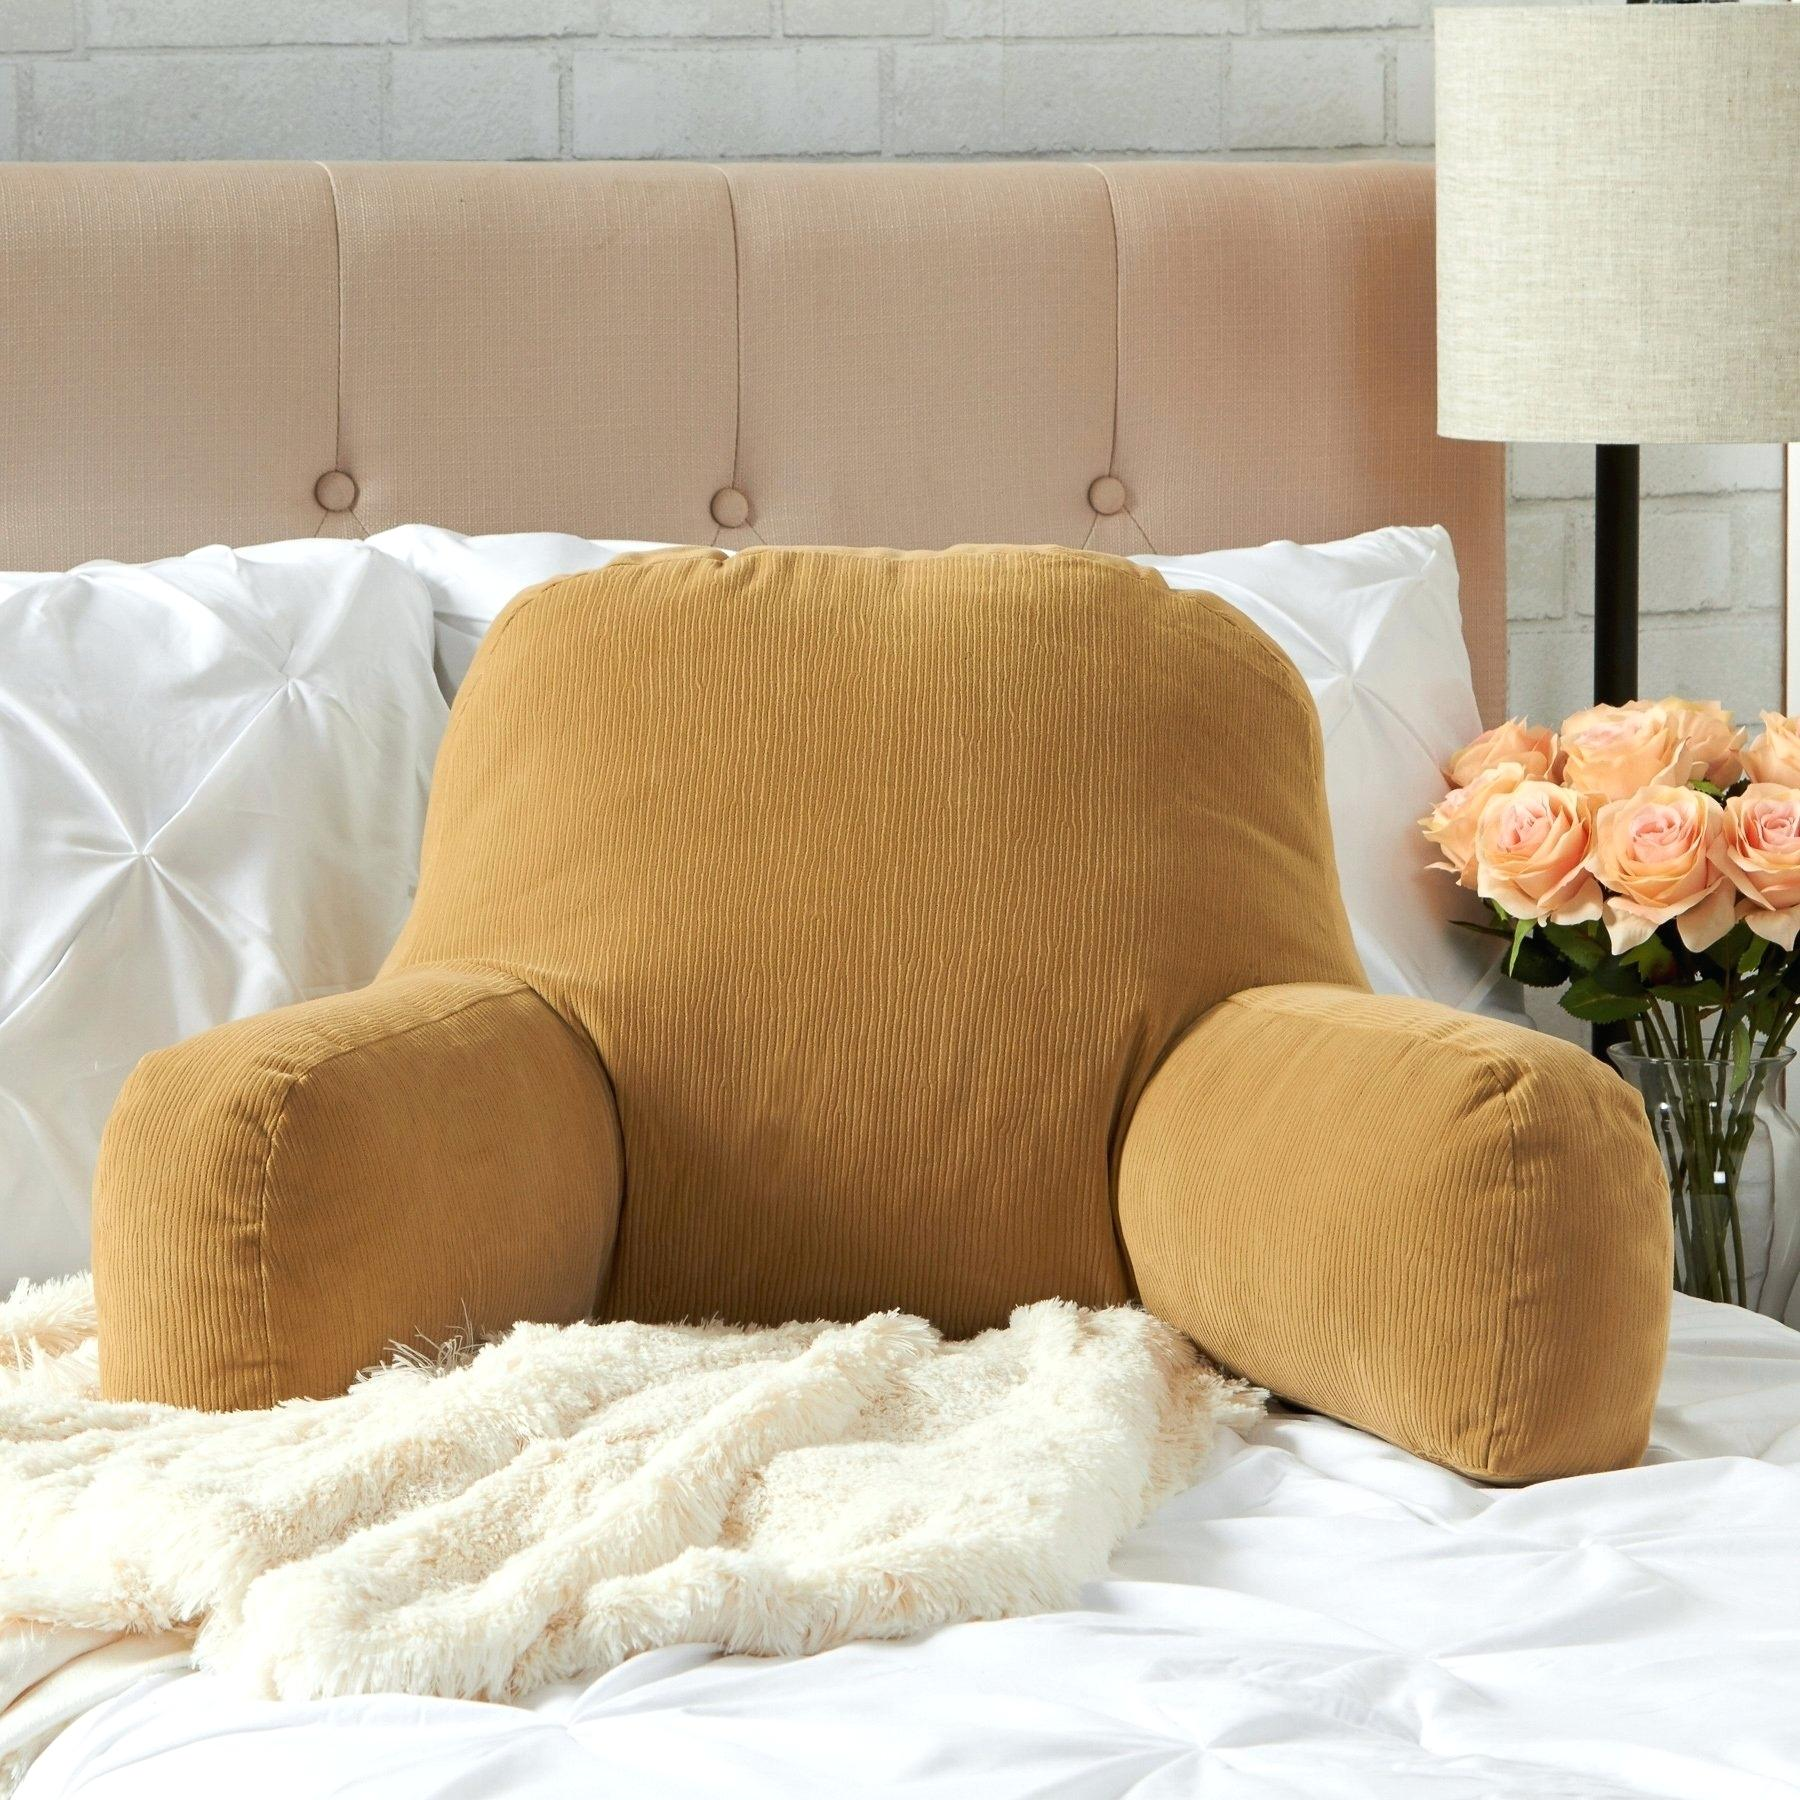 Picture of: Backrest Pillows With Arms Jobs In Wildlife